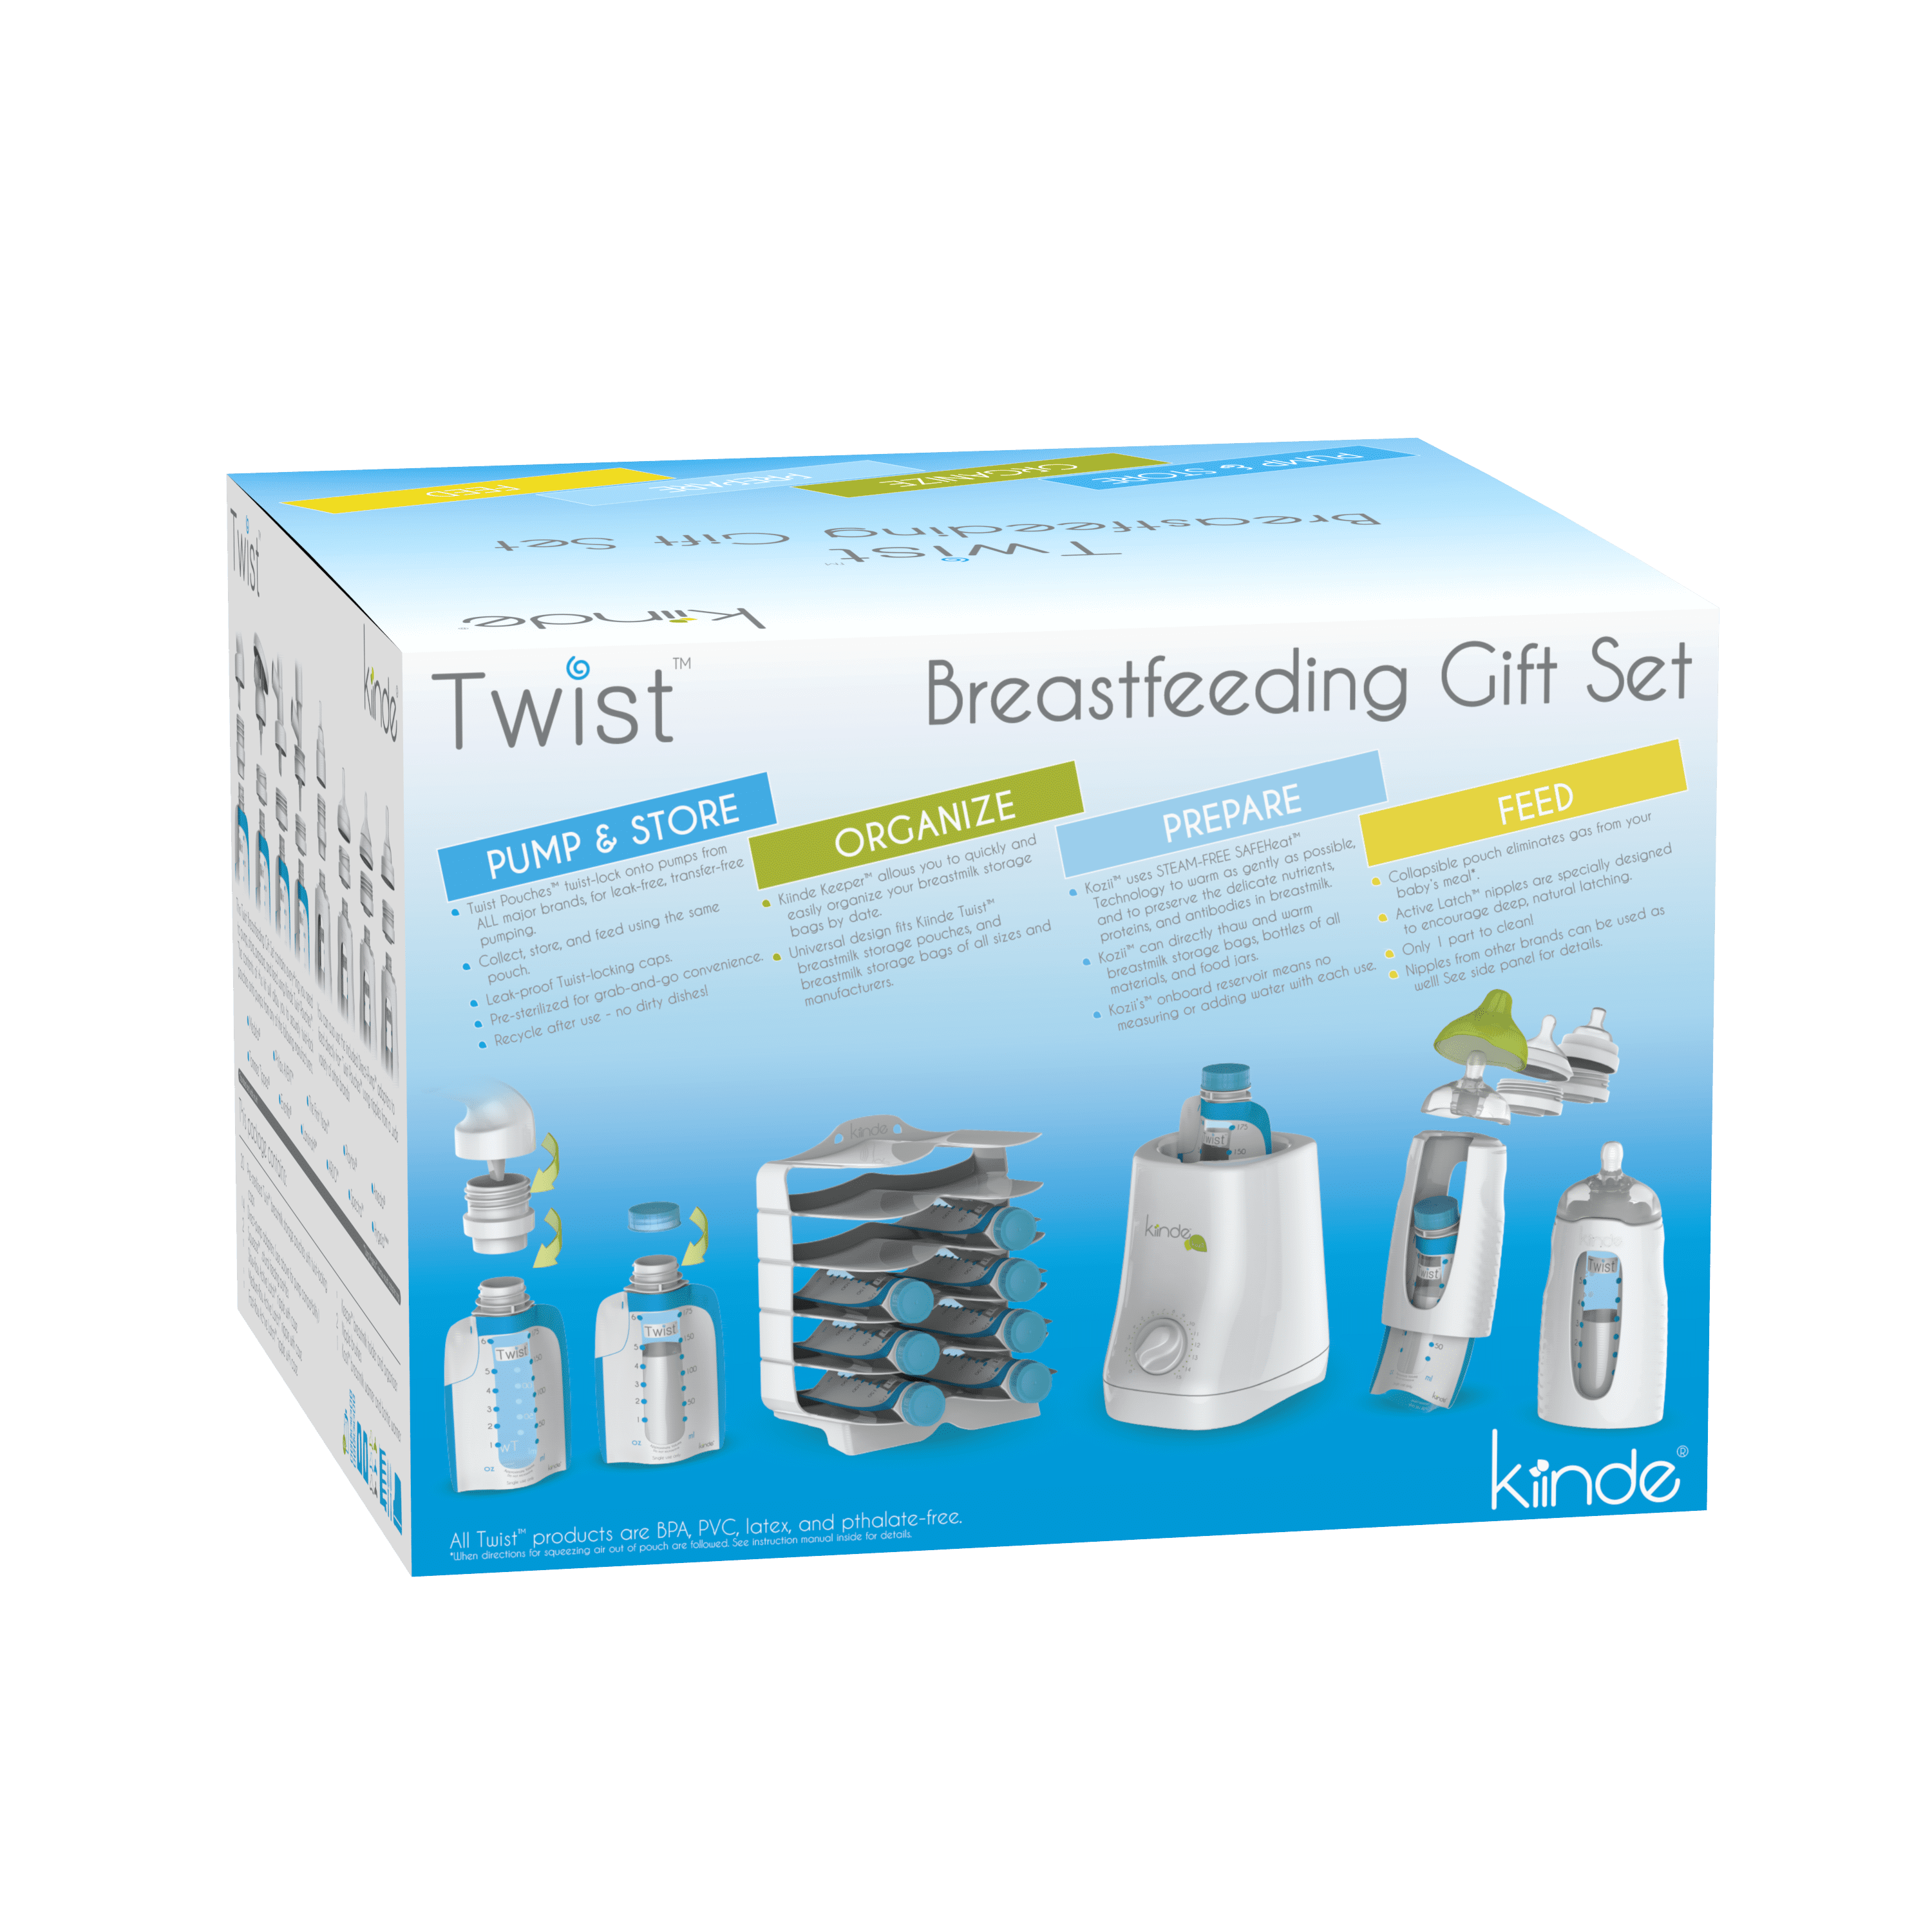 Kiinde Babies R Us Breastfeeding Gift Set Twist  Kinde Opened only for picture